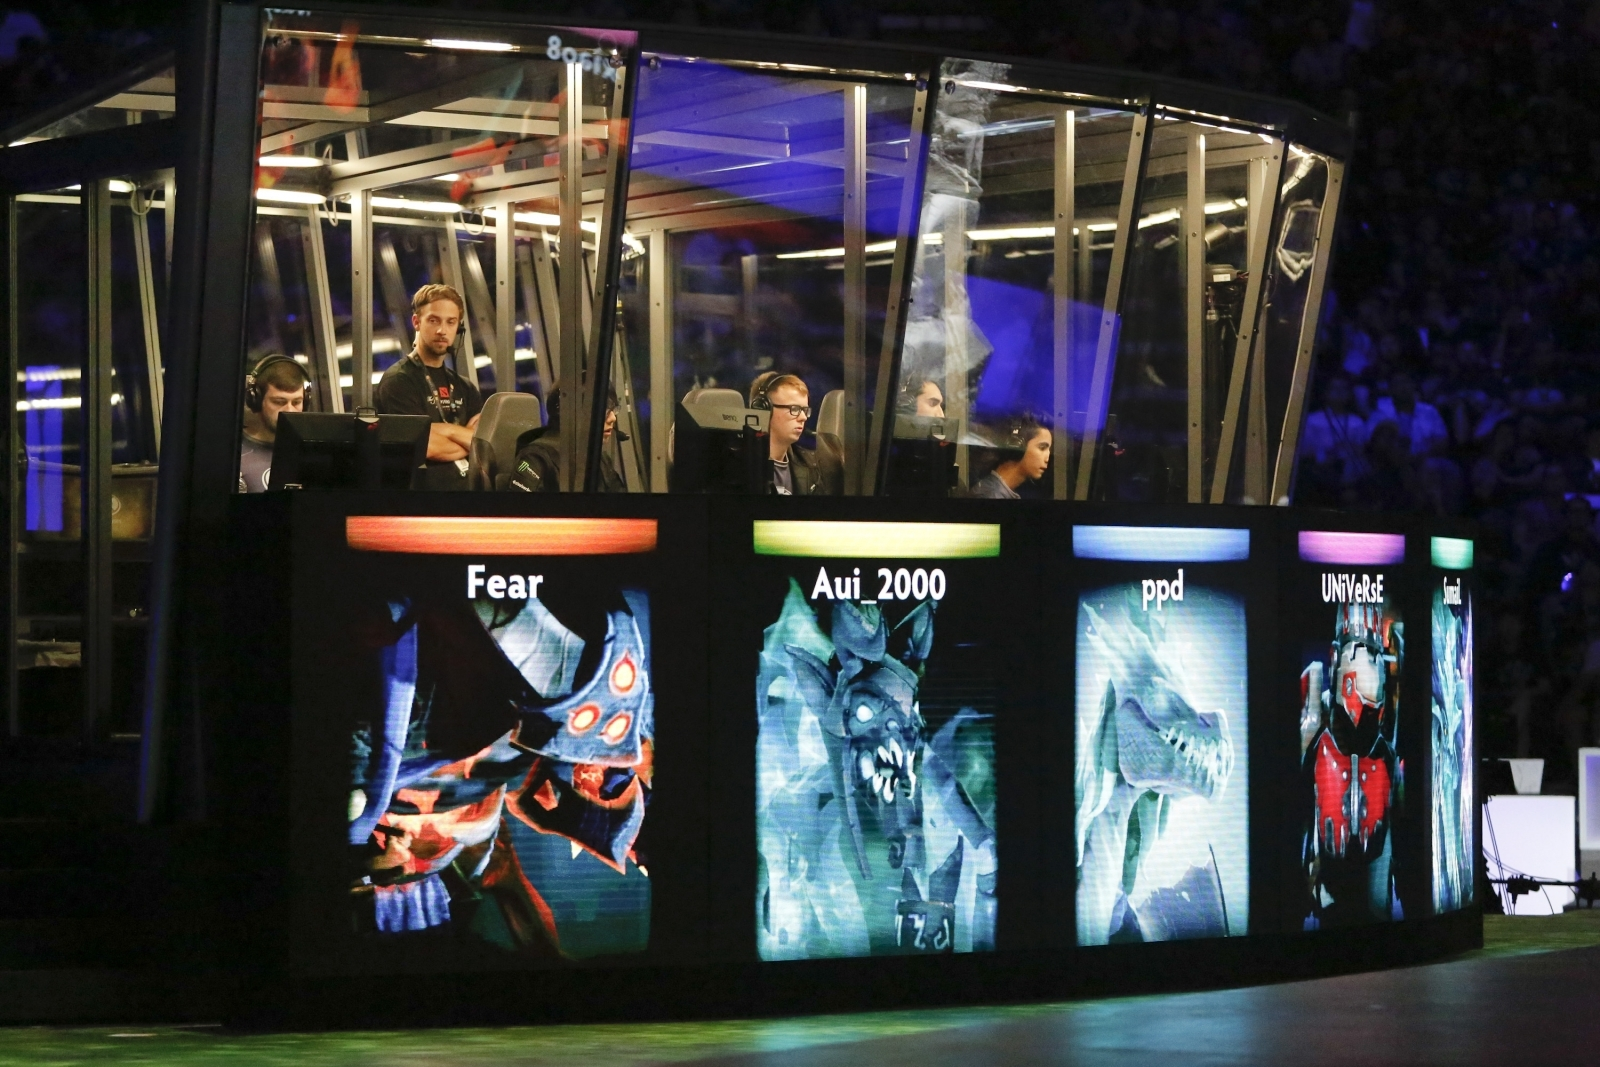 Dota 2-Playing Robot Beats the Pros at The International